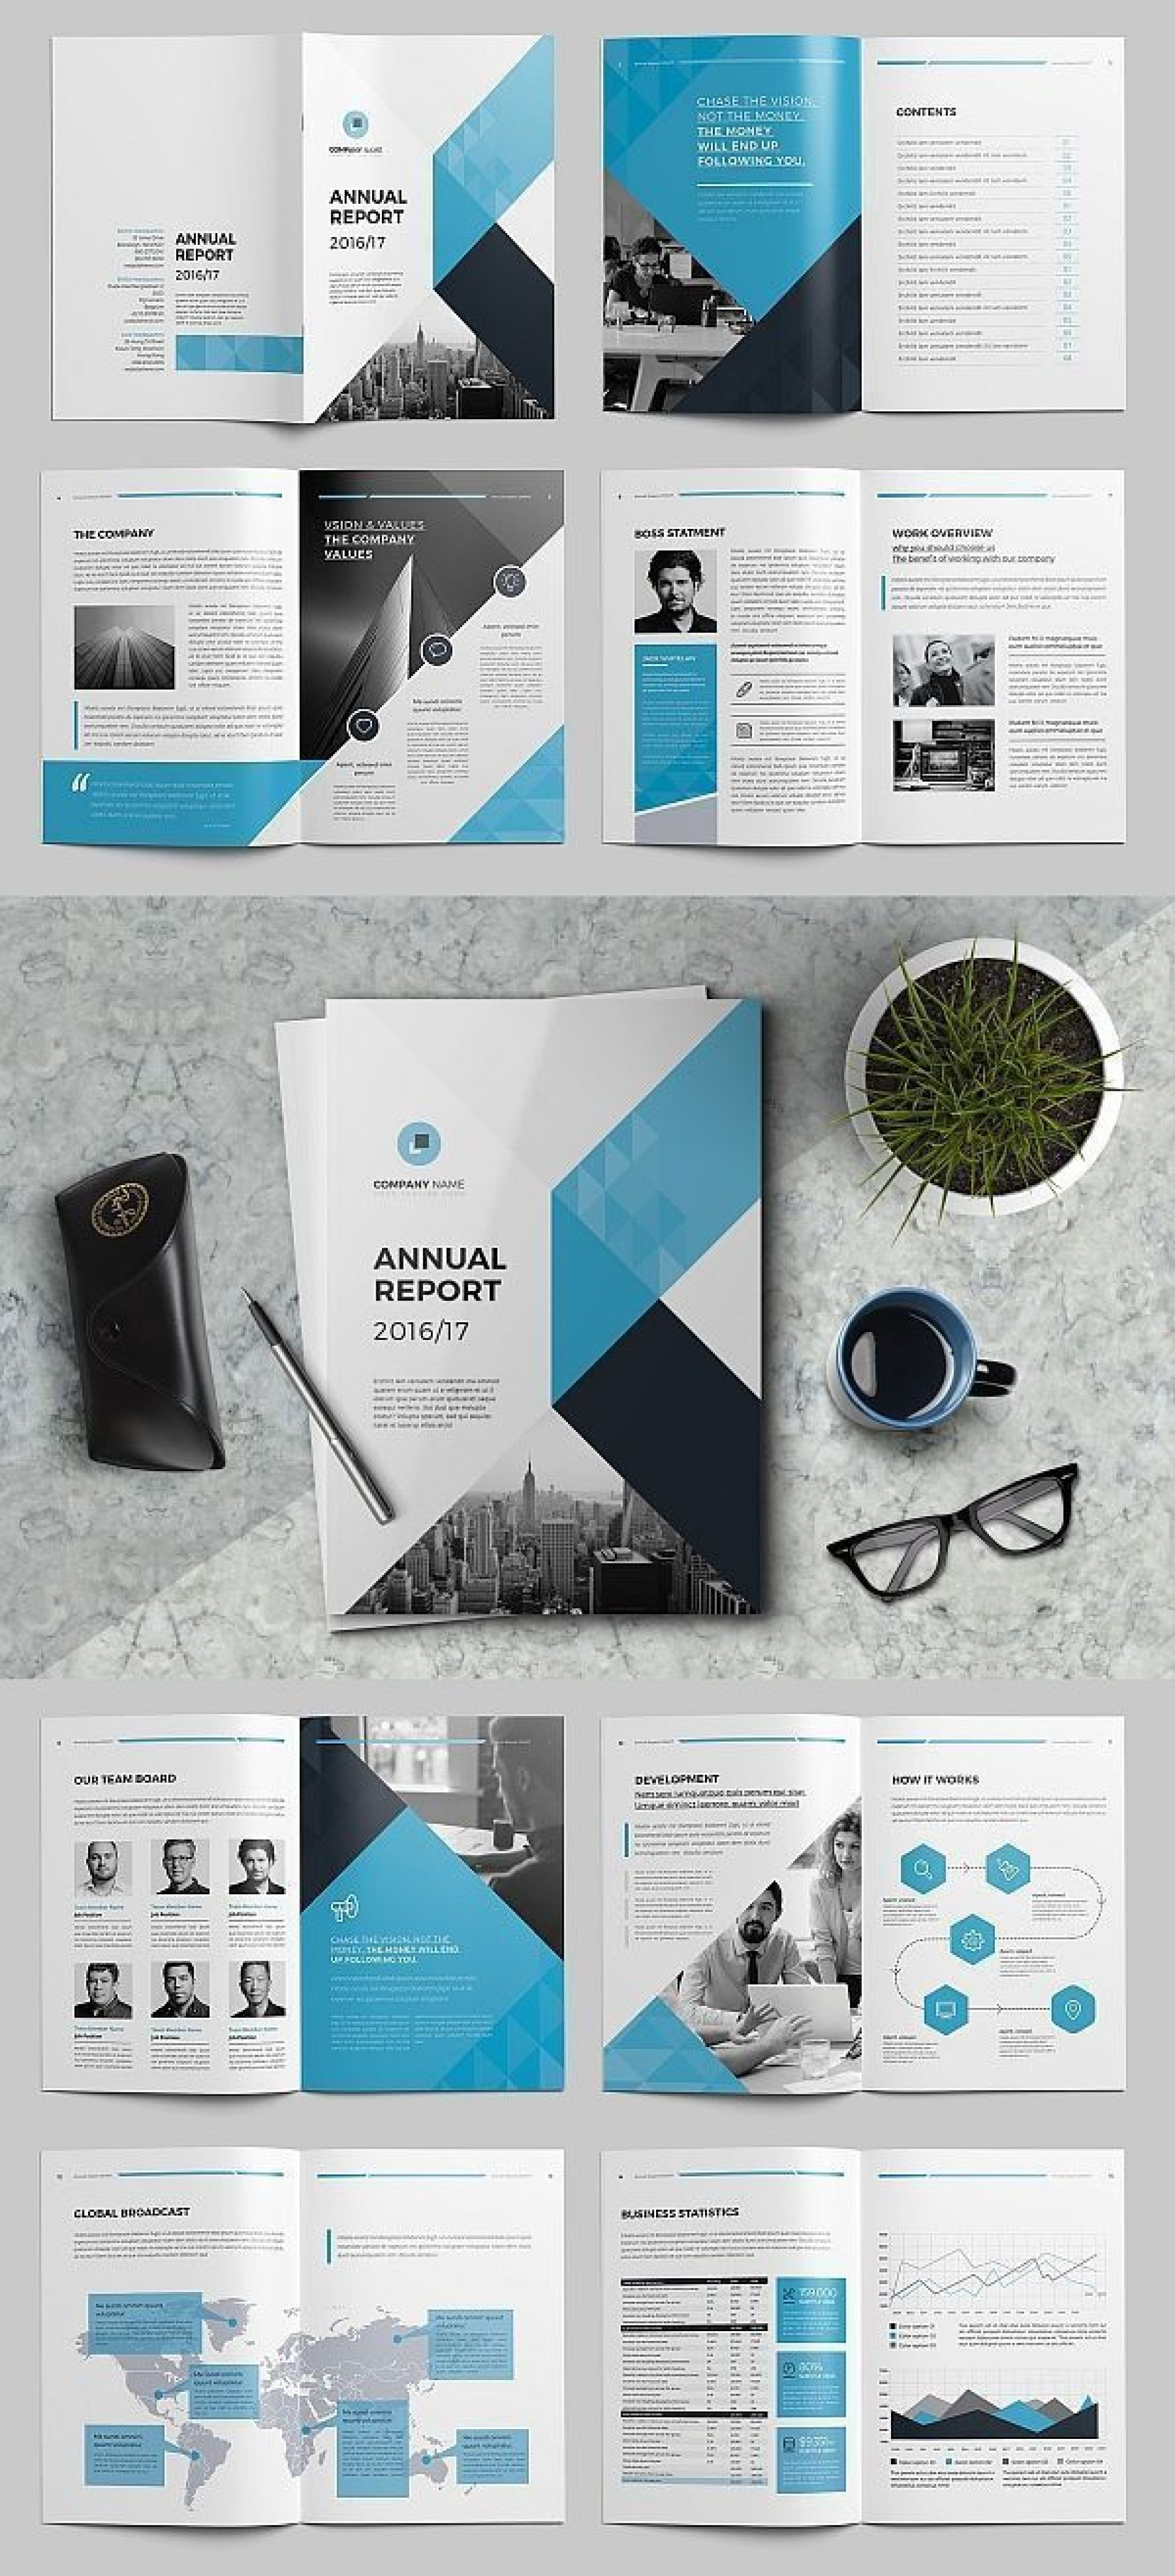 001 Incredible Free Annual Report Template Indesign Image  Adobe Non Profit1920